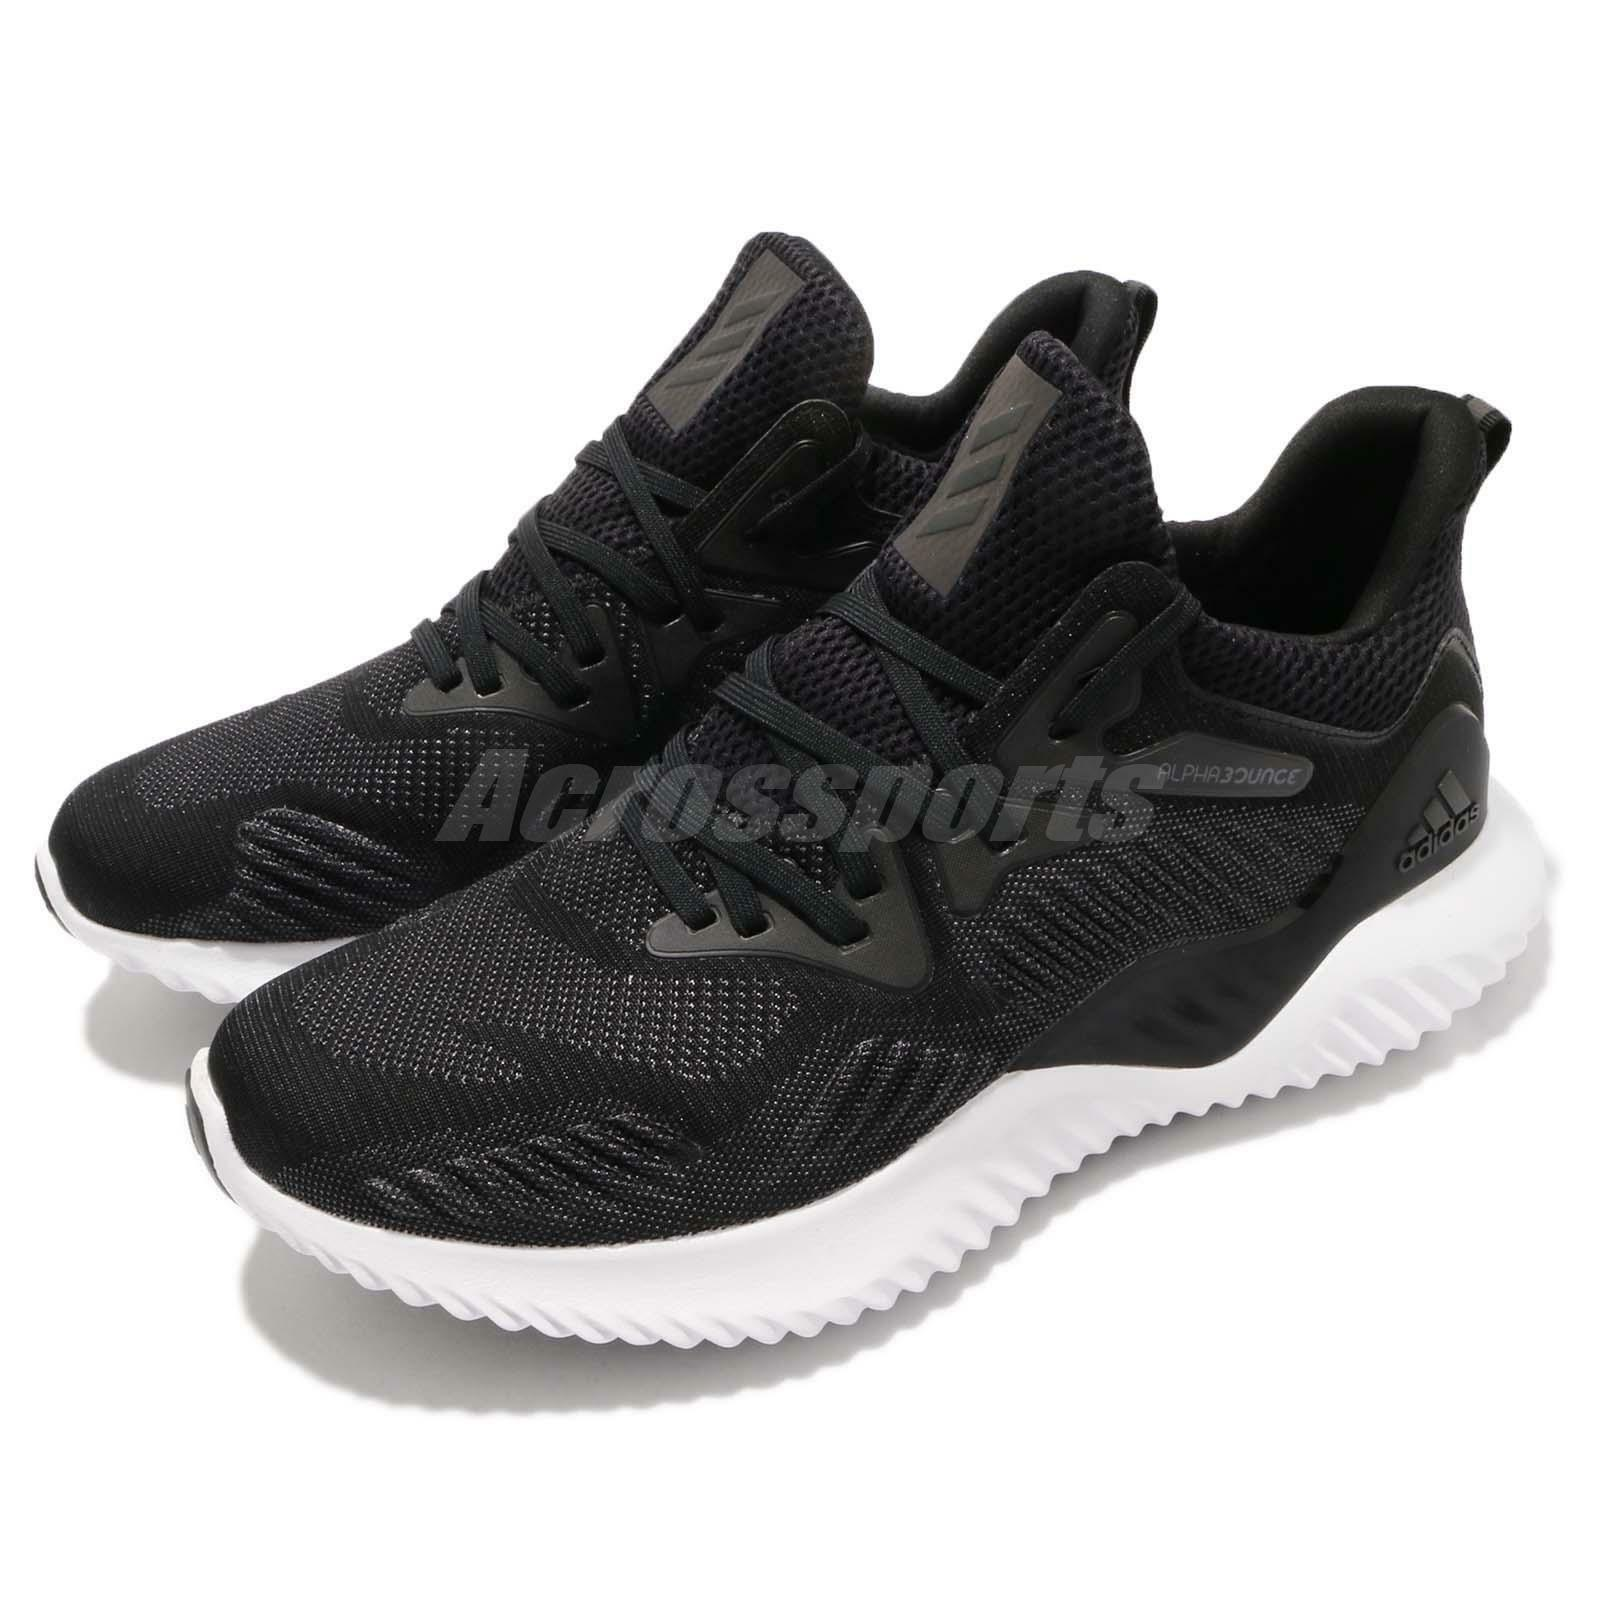 adidas Alphabounce Beyond M Bounce Noir blanc hommes Running Shoes Sneakers AC8273